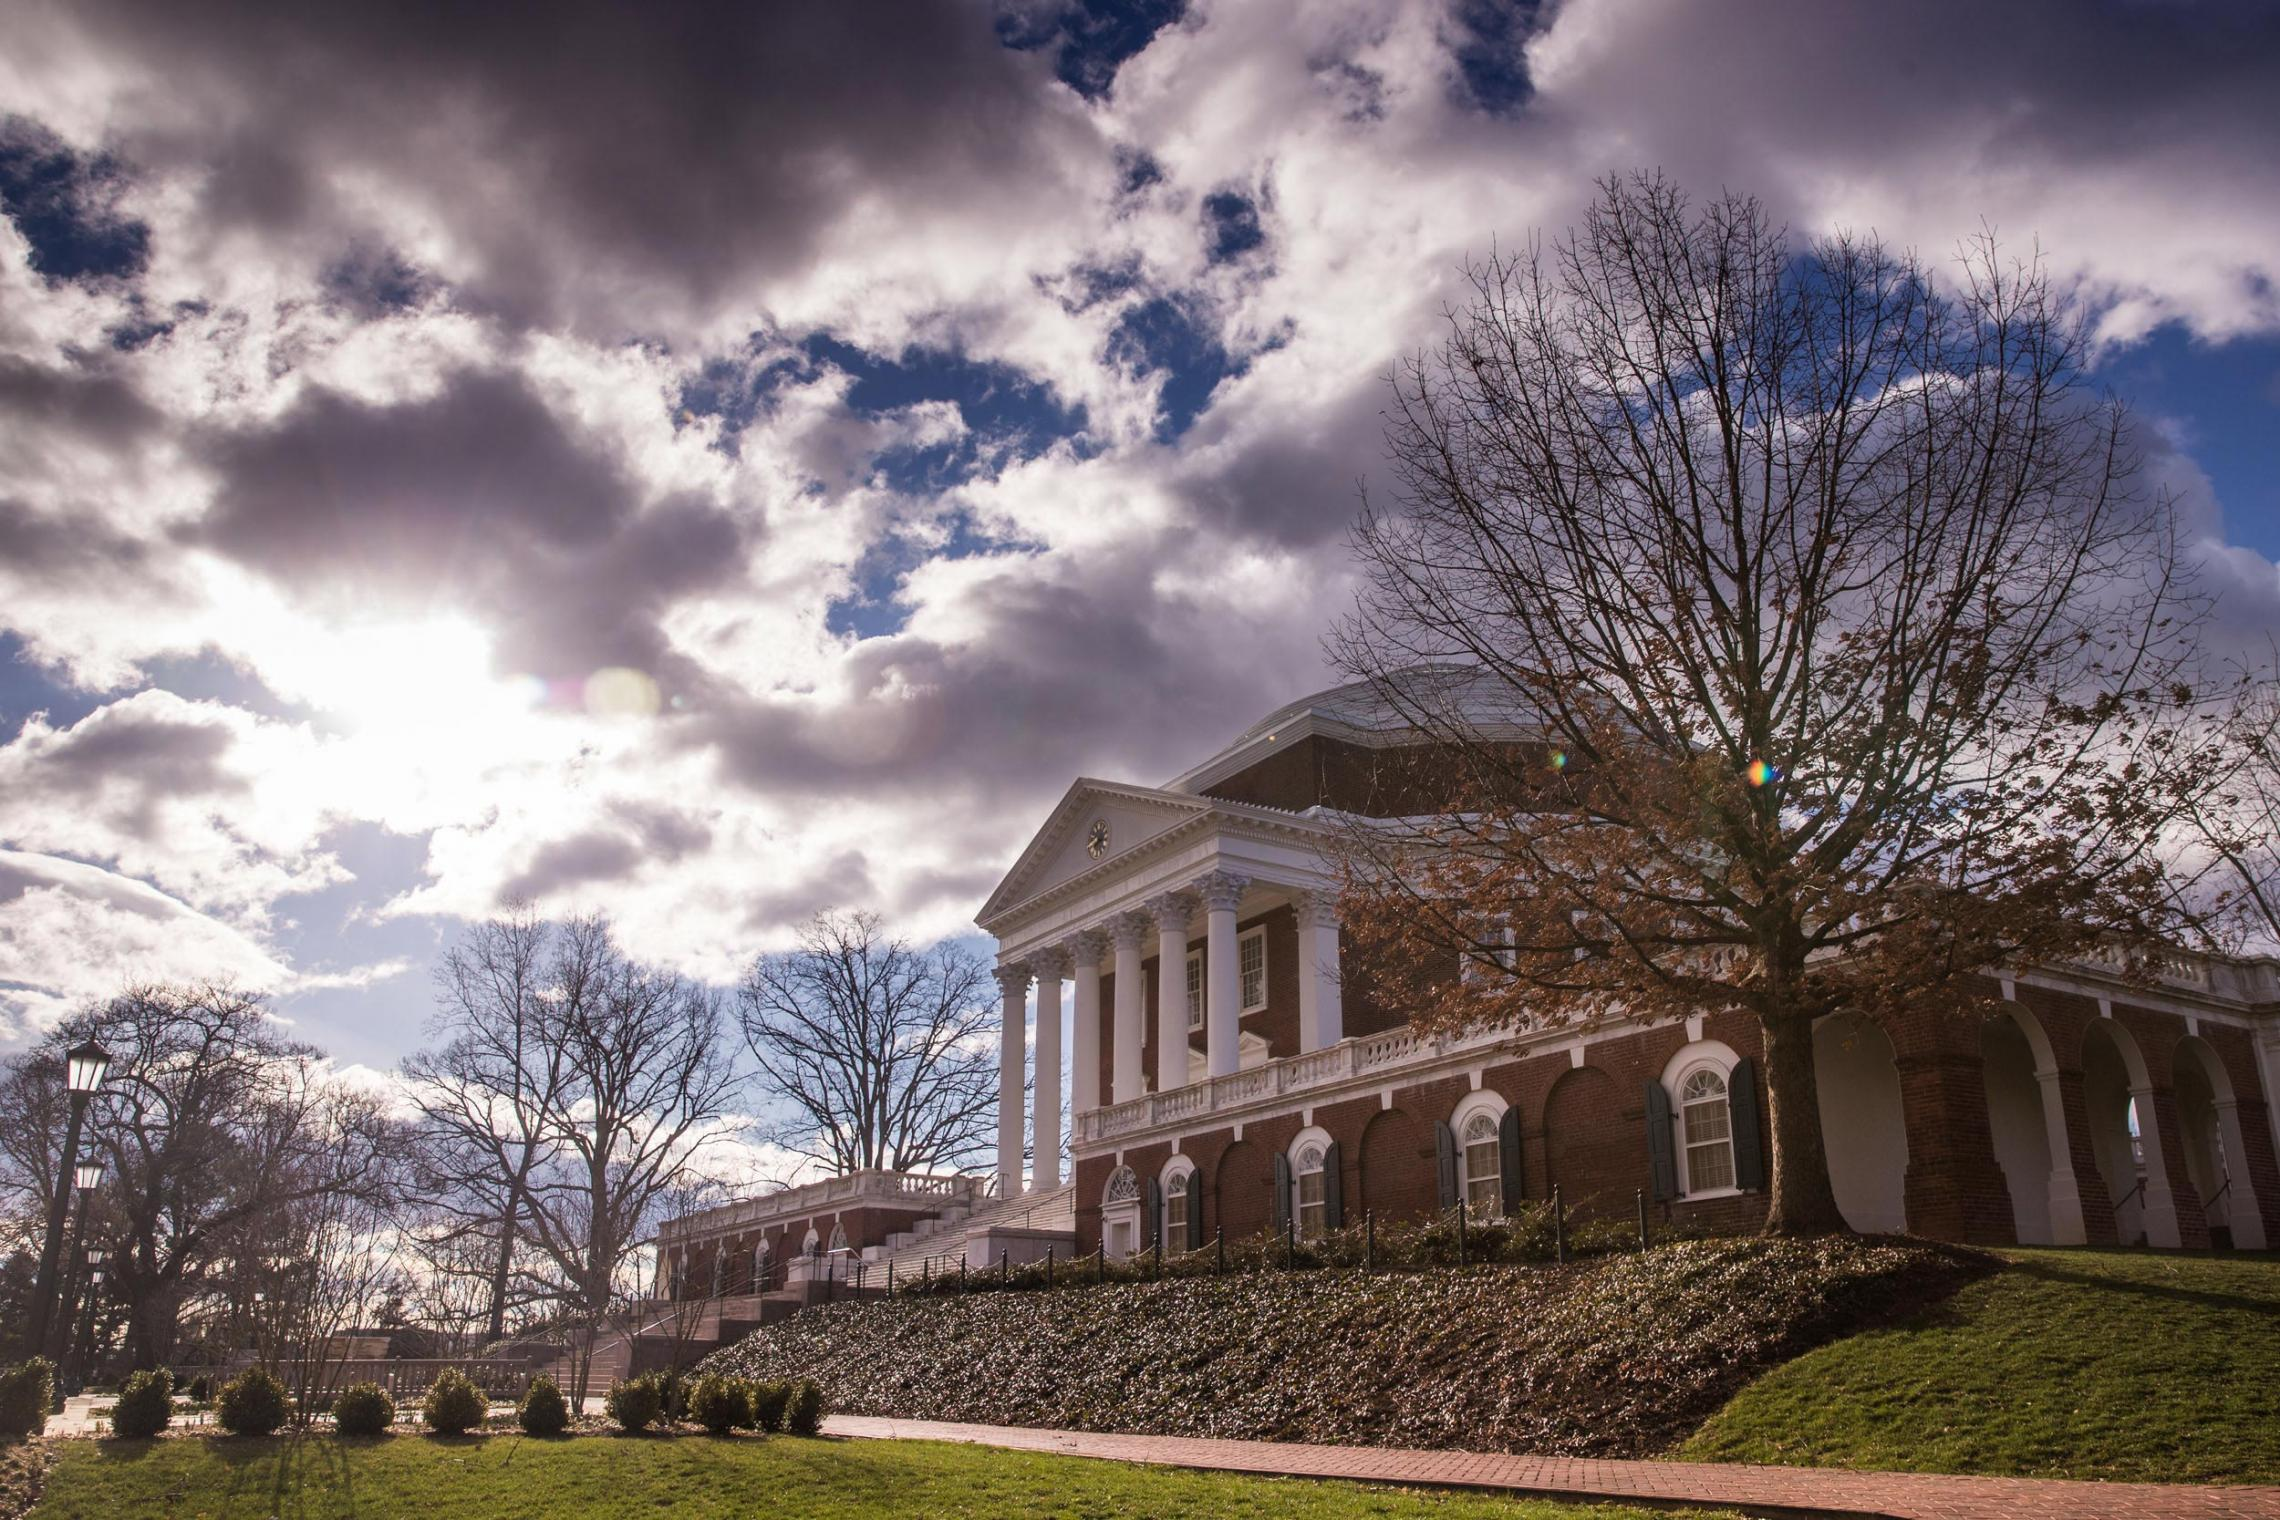 U.S. News' Latest Rankings Place 5 UVA Grad Schools in Nation's Top 25